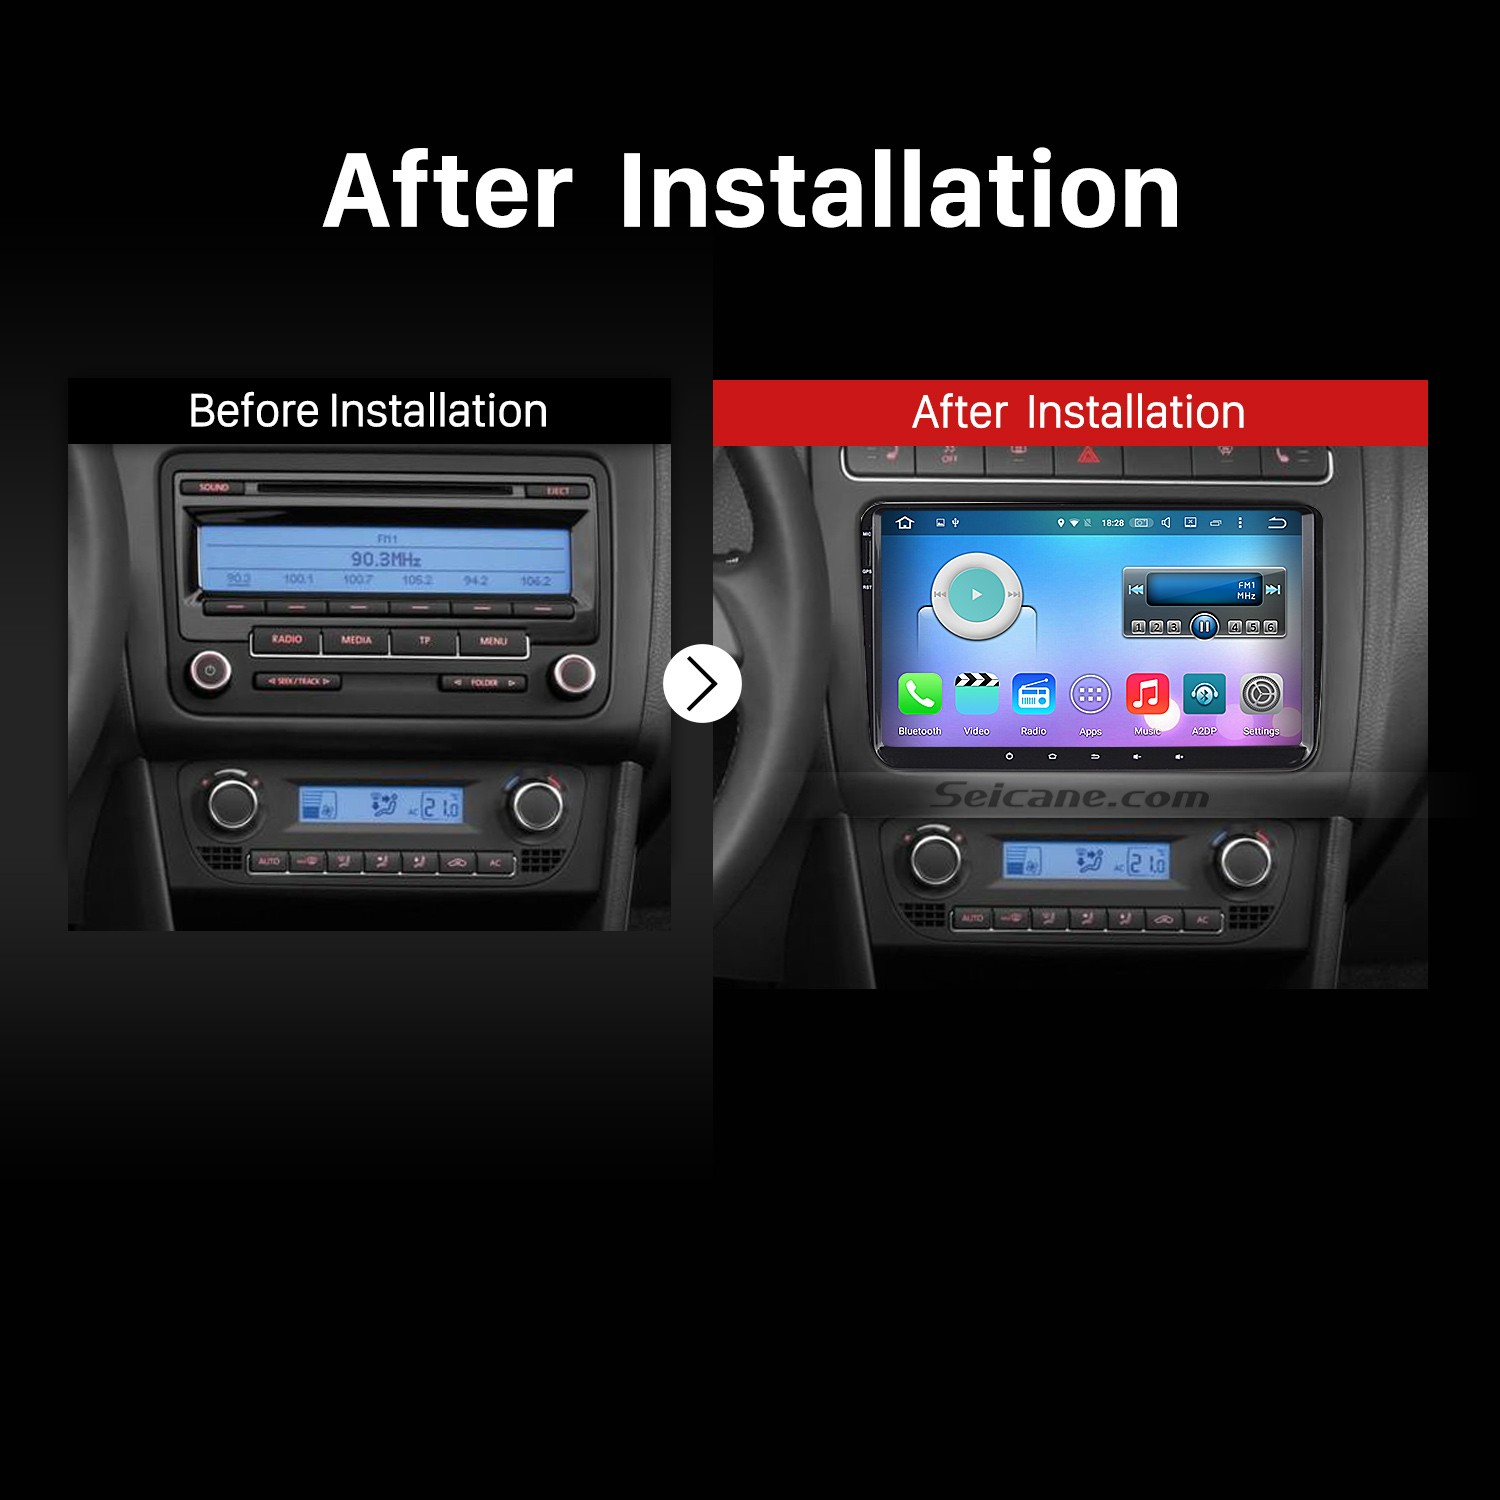 Hqdefault moreover Remove The Top Panel With A Lever Vw Volkswagen Passat Golf Jetta Car Radio together with Hqdefault additionally Vw Volkswagen Jetta Sagitr Car Stereo After Installation as well Radio Mk Basic Mp. on 2006 volkswagen jetta radio removal